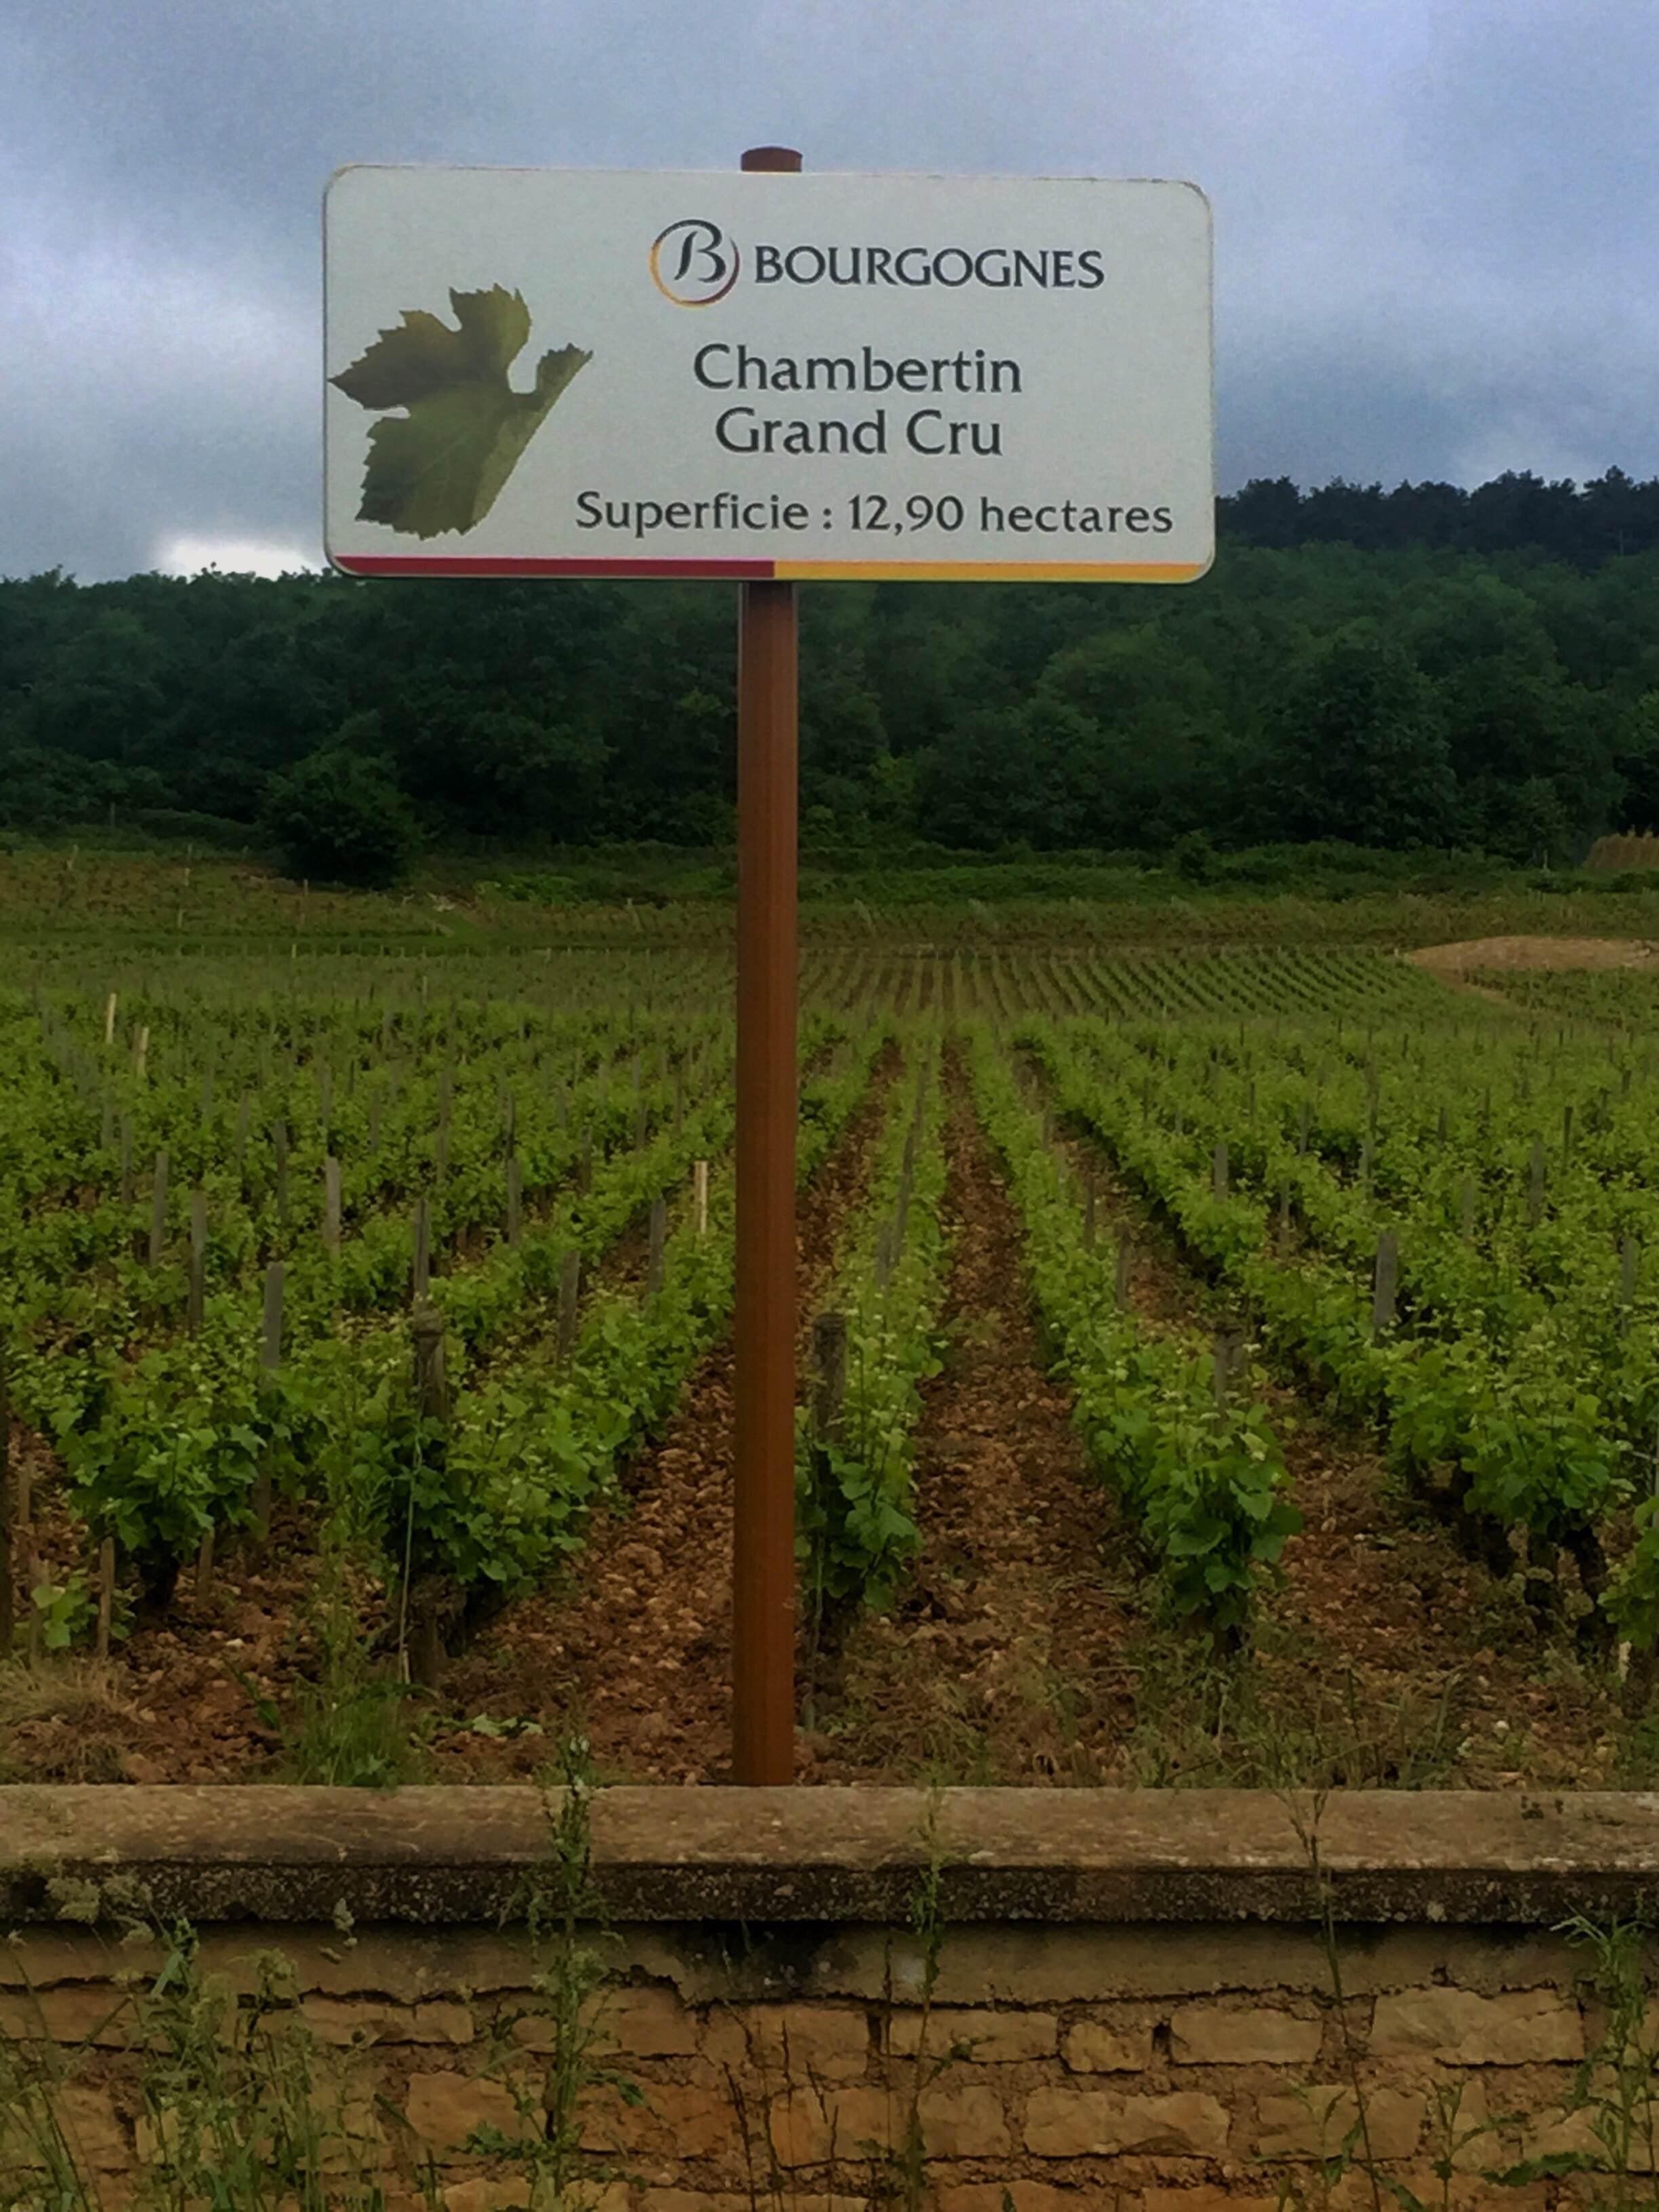 Agriculture in Gevrey-Chambertin